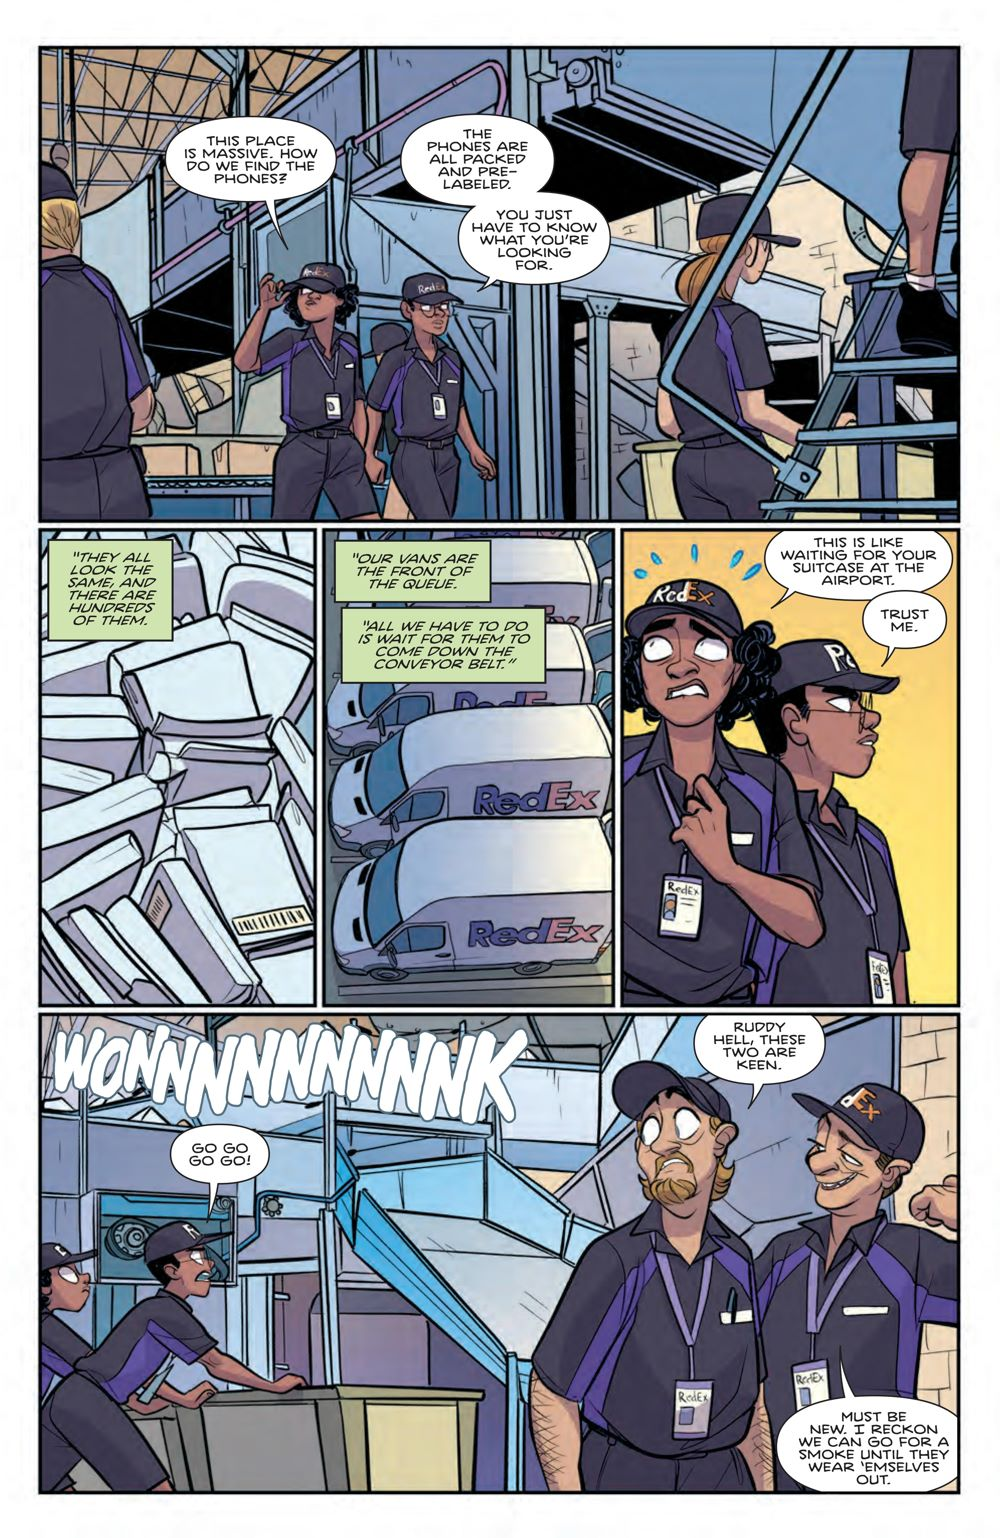 WickedThings_004_PRESS_6 ComicList Previews: WICKED THINGS #4